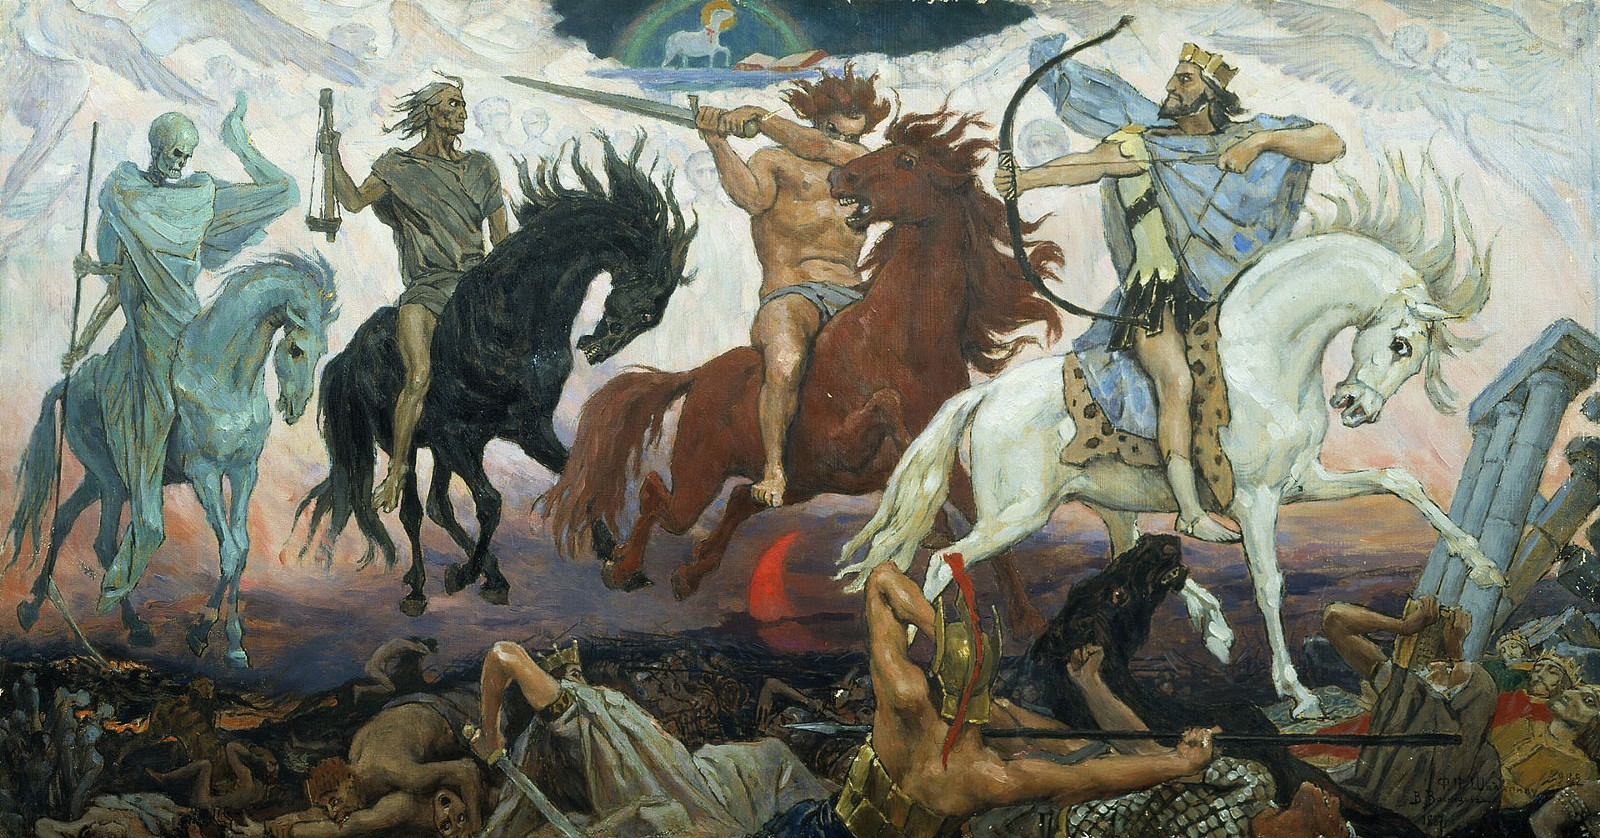 The Four Horsemen of the Cryptocalypse